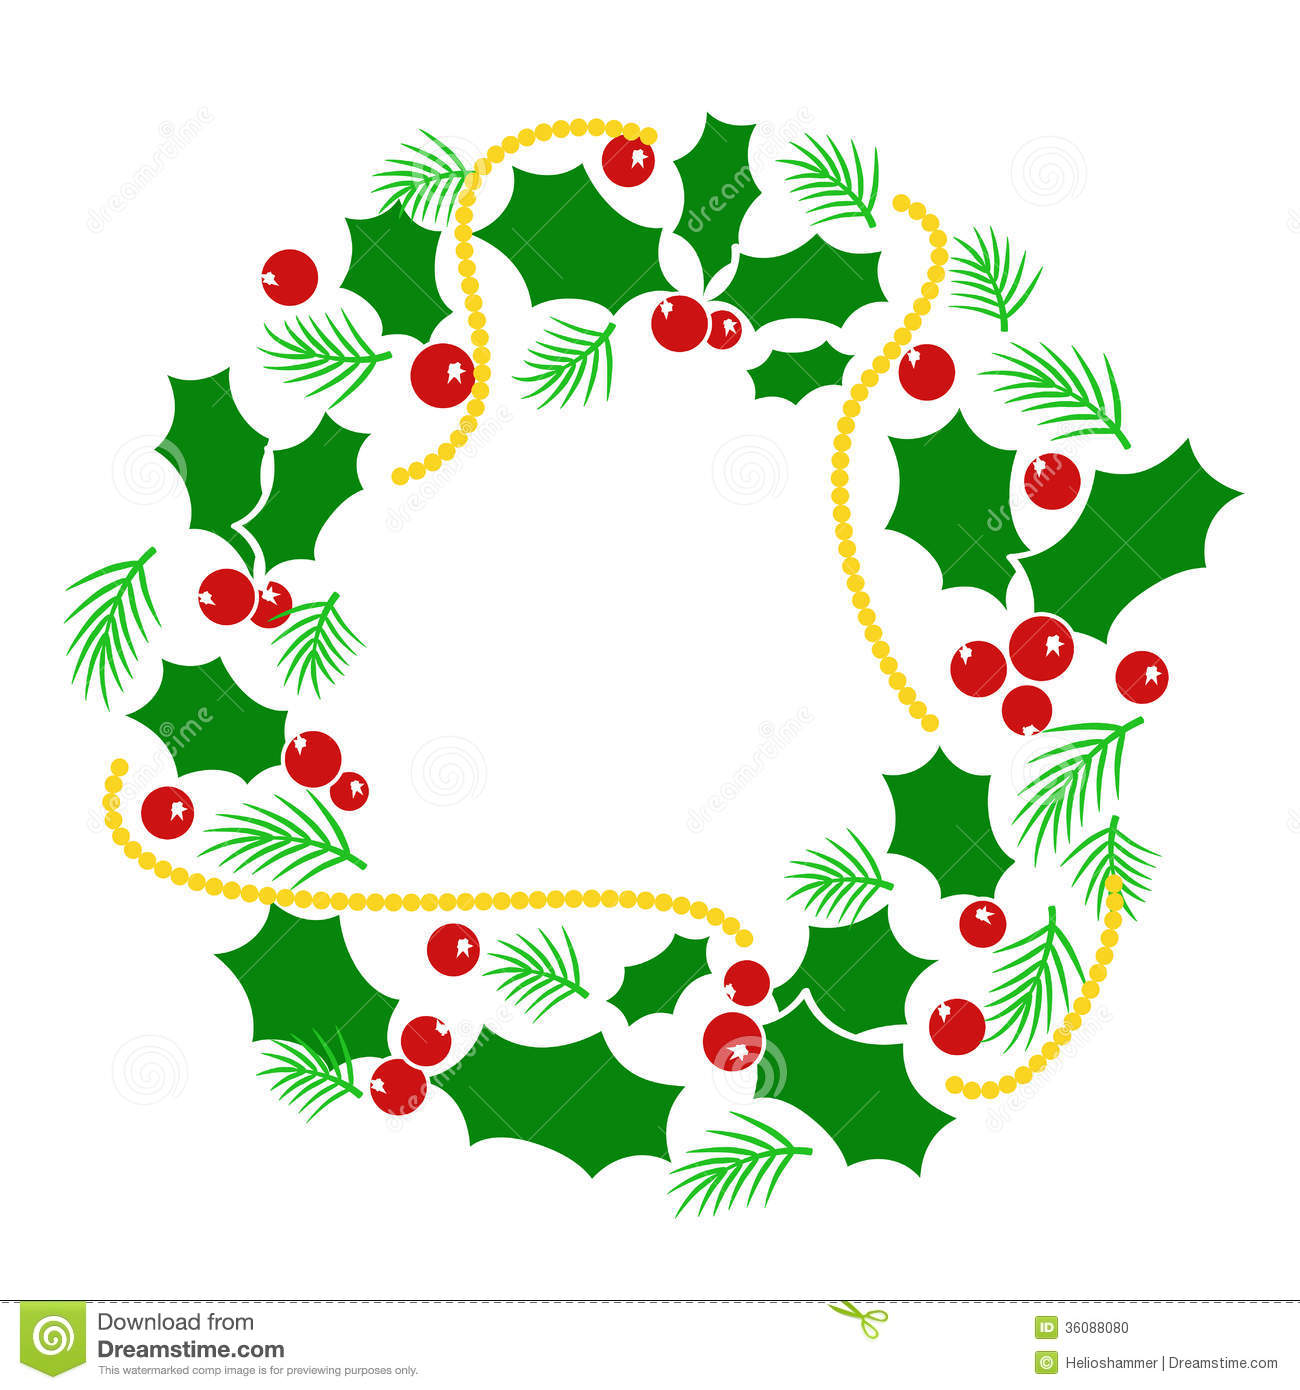 Abstract Christmas Wreath Stock Photo.